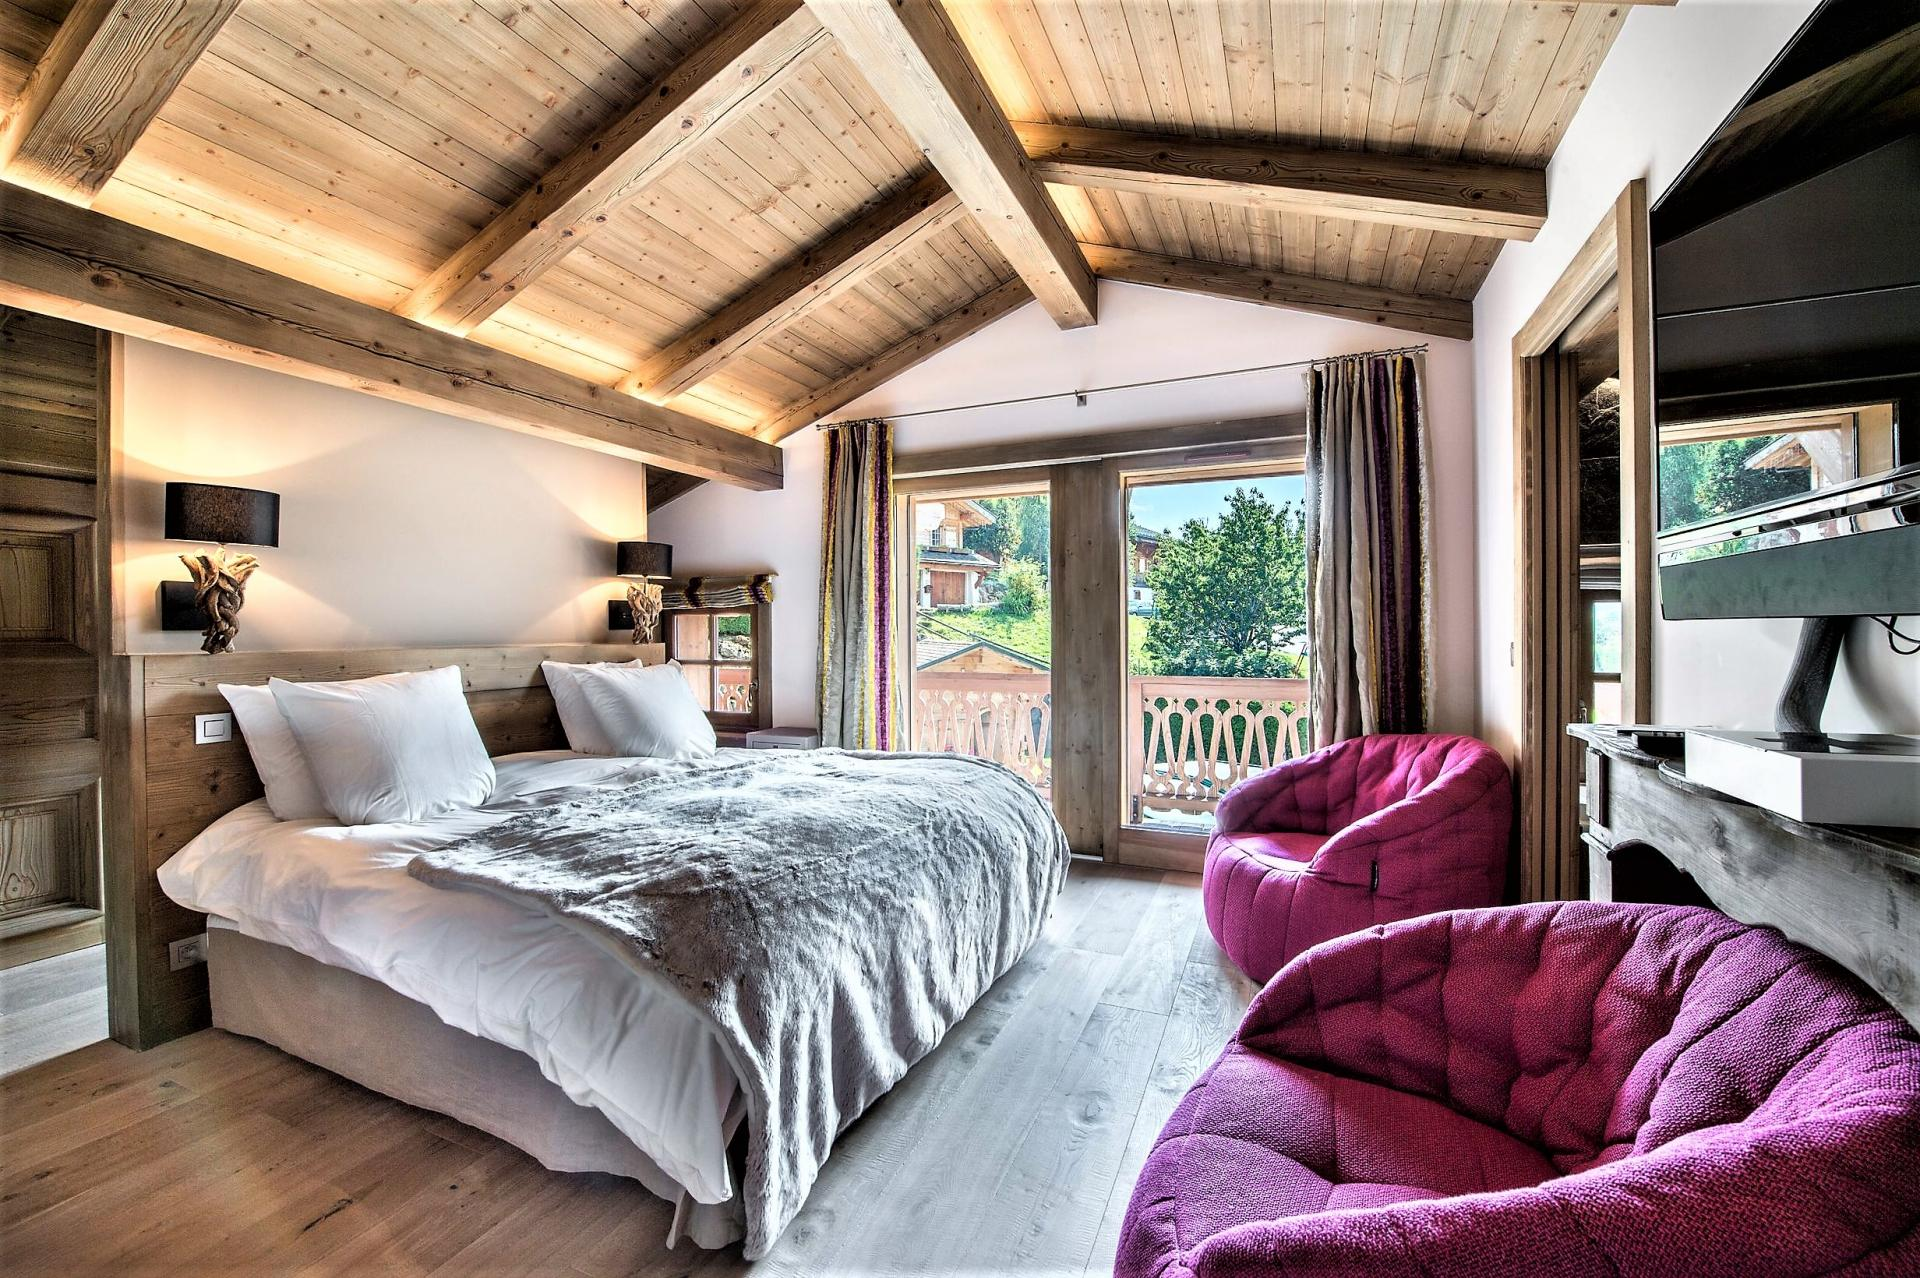 THE MASTER BEDROOM IN A CHALET RENTAL IN THE FRENCH ALPS